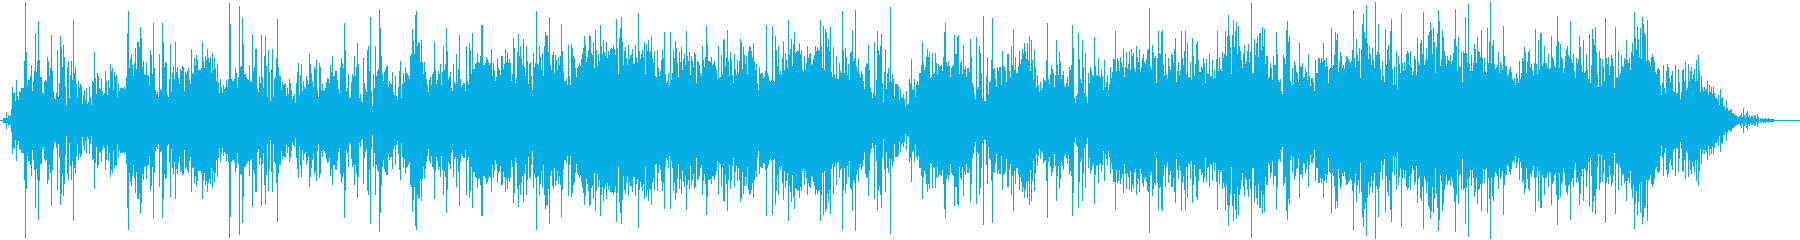 Fluttering fluffy underwater ambient's reproduced waveform